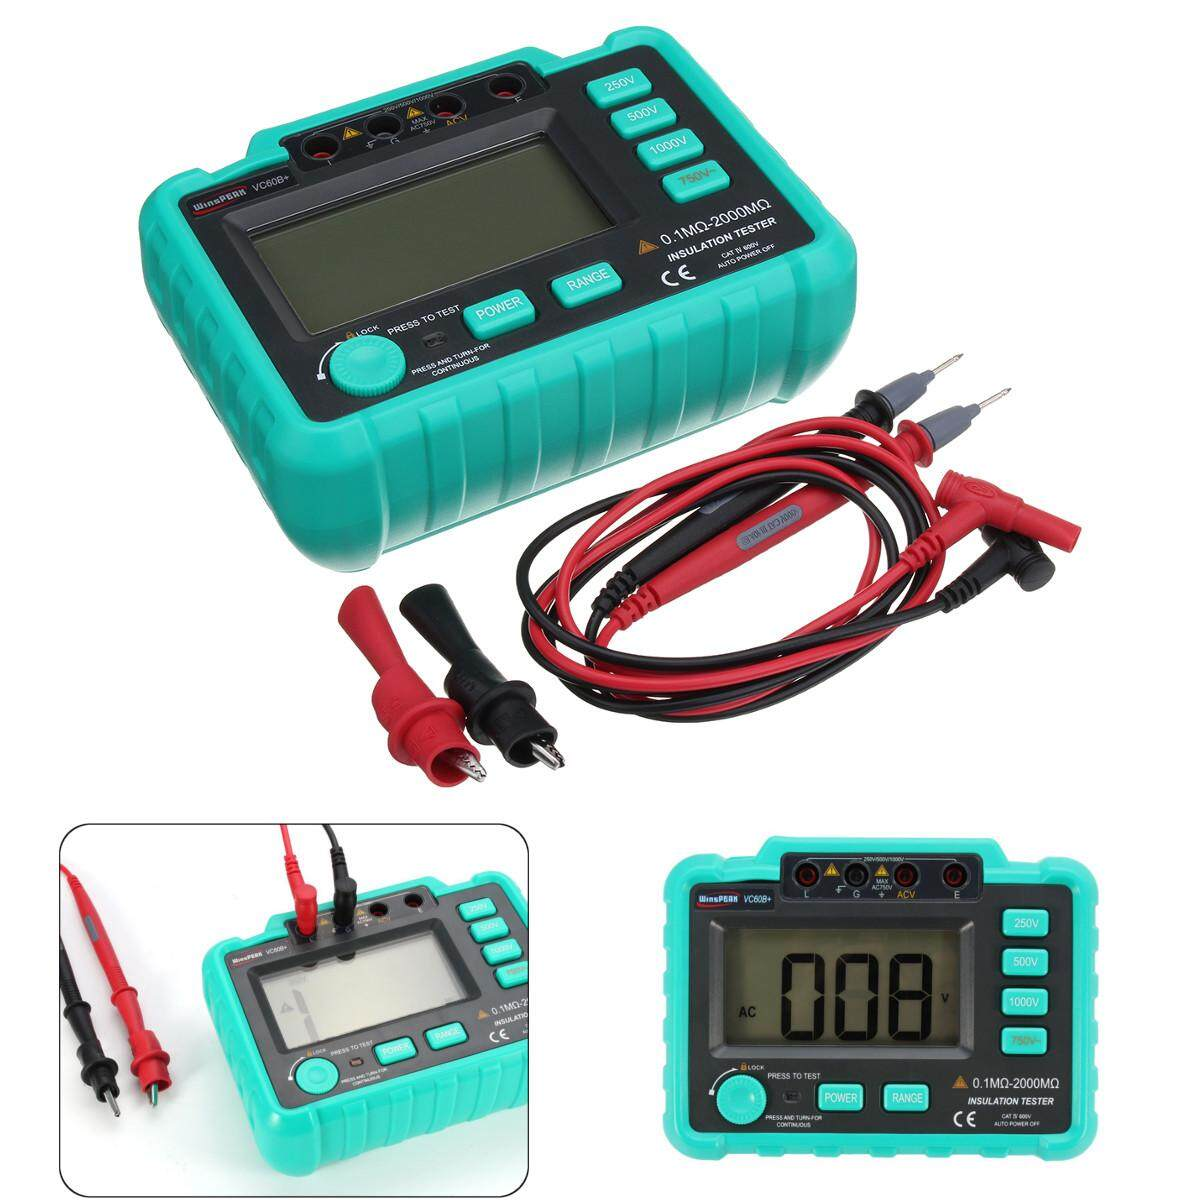 Electrical Testers Test Leads Buy Portable Ac Voltage Pencil Non Contact Voltmeter Circuit Detector Vc60b Digital Insulation Resistance Tester Megger Megohm Meter 250 500 1000v Intl